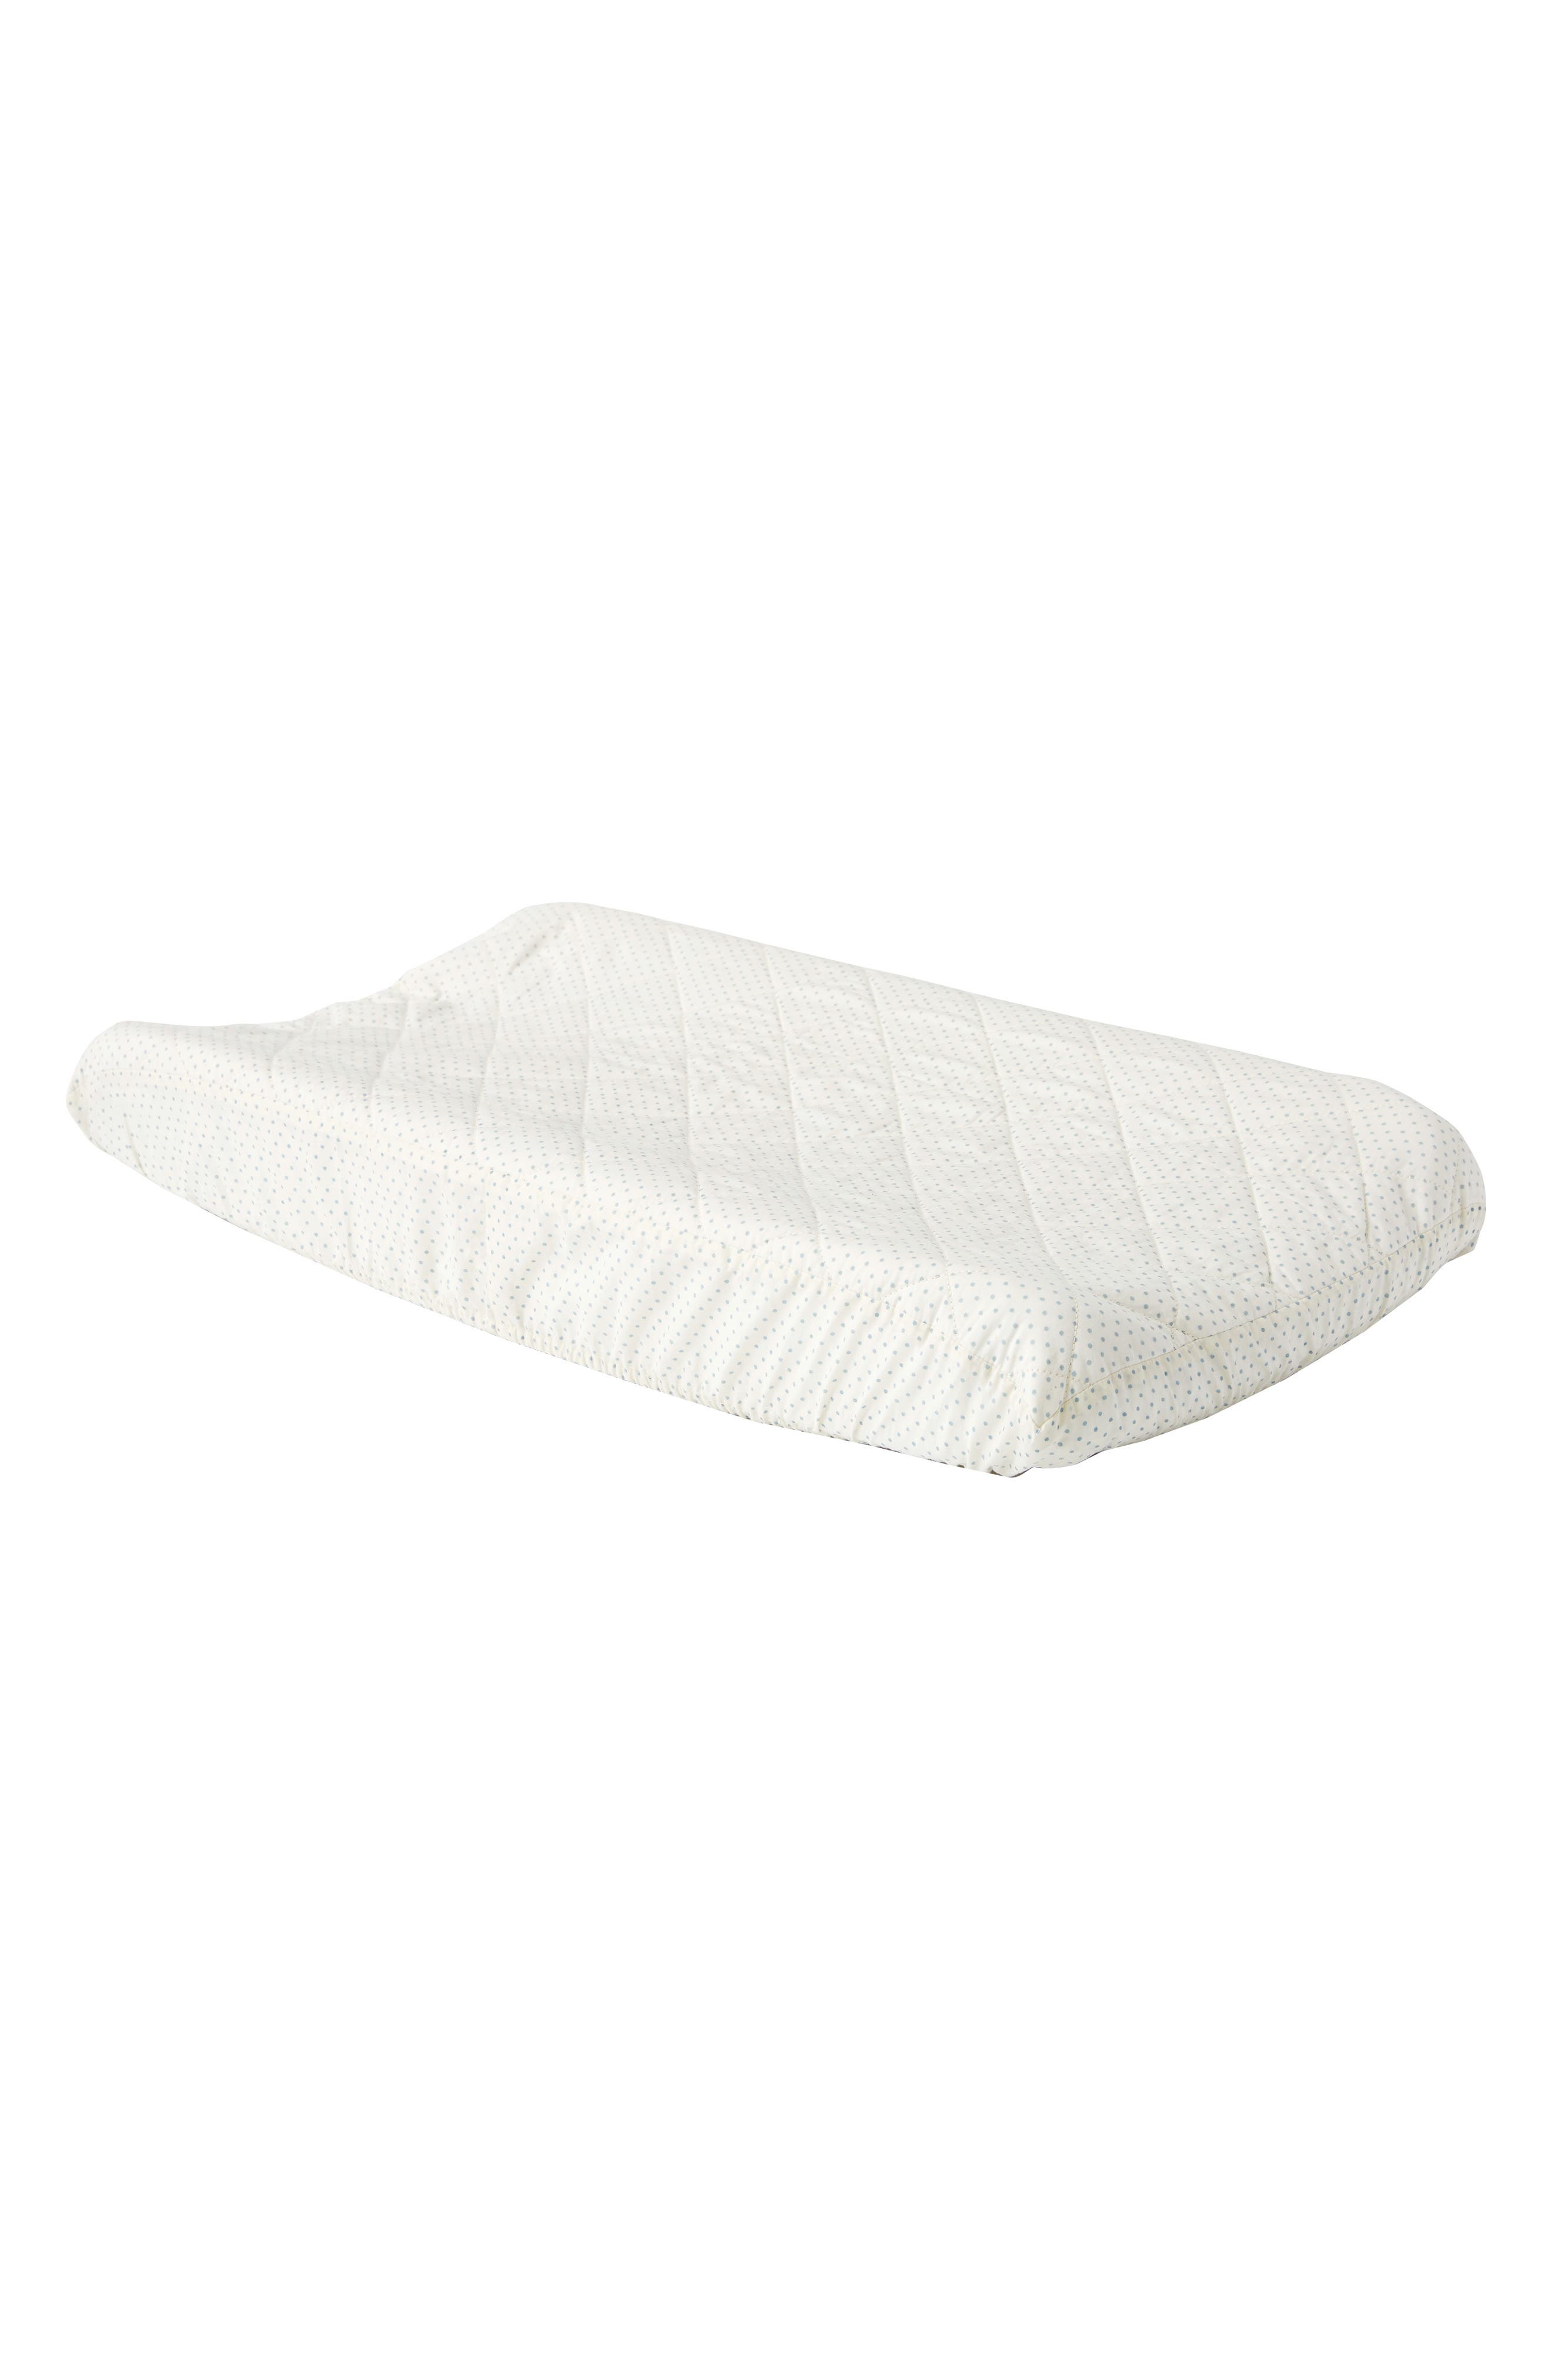 Brushed Cotton Changing Pad Cover,                             Alternate thumbnail 5, color,